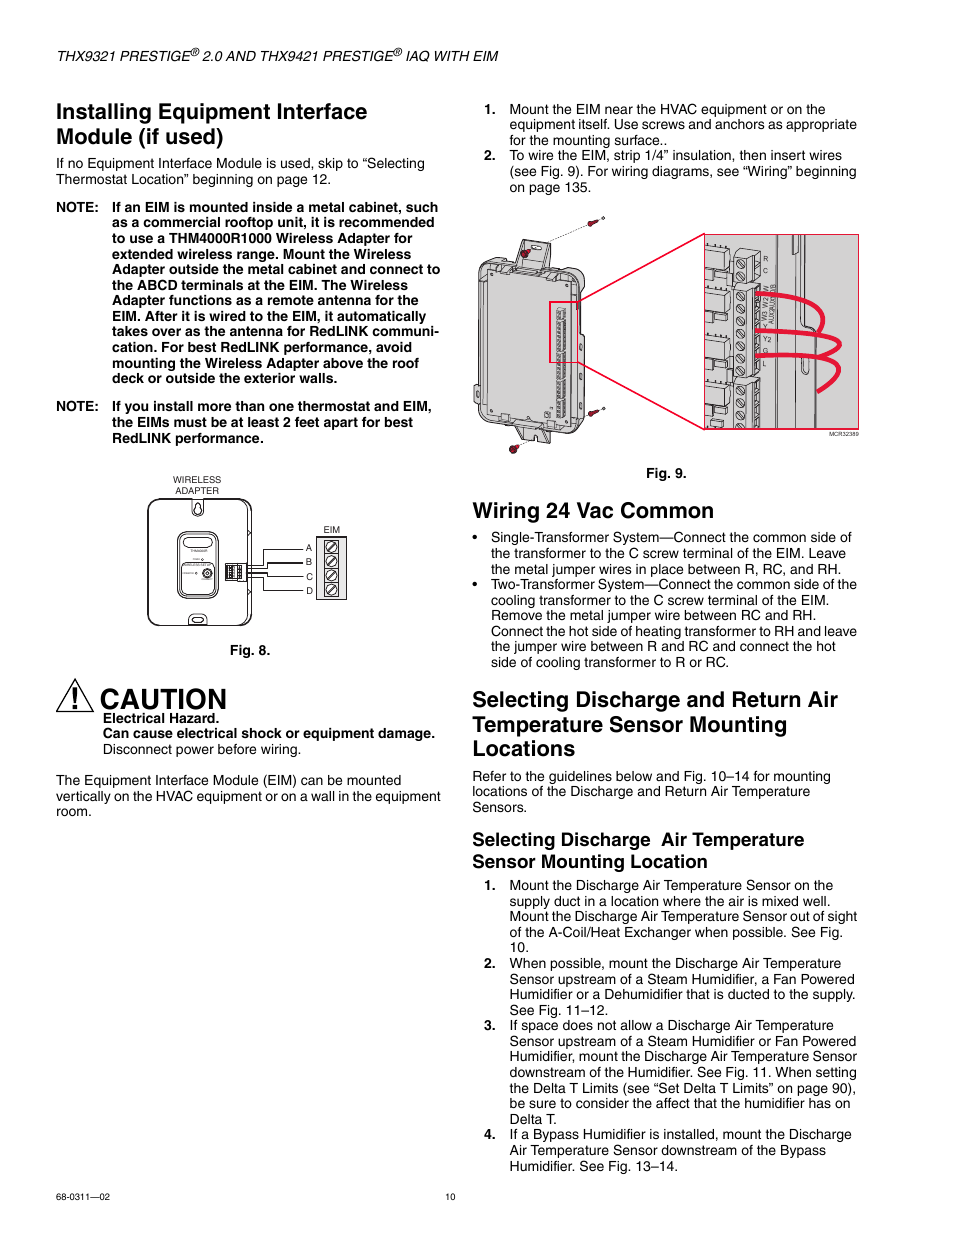 Installing equipment interface module (if used), Wiring 24 vac common,  Mounting locations | Honeywell PRESTIGE THX9321 User Manual | Page 10 / 160